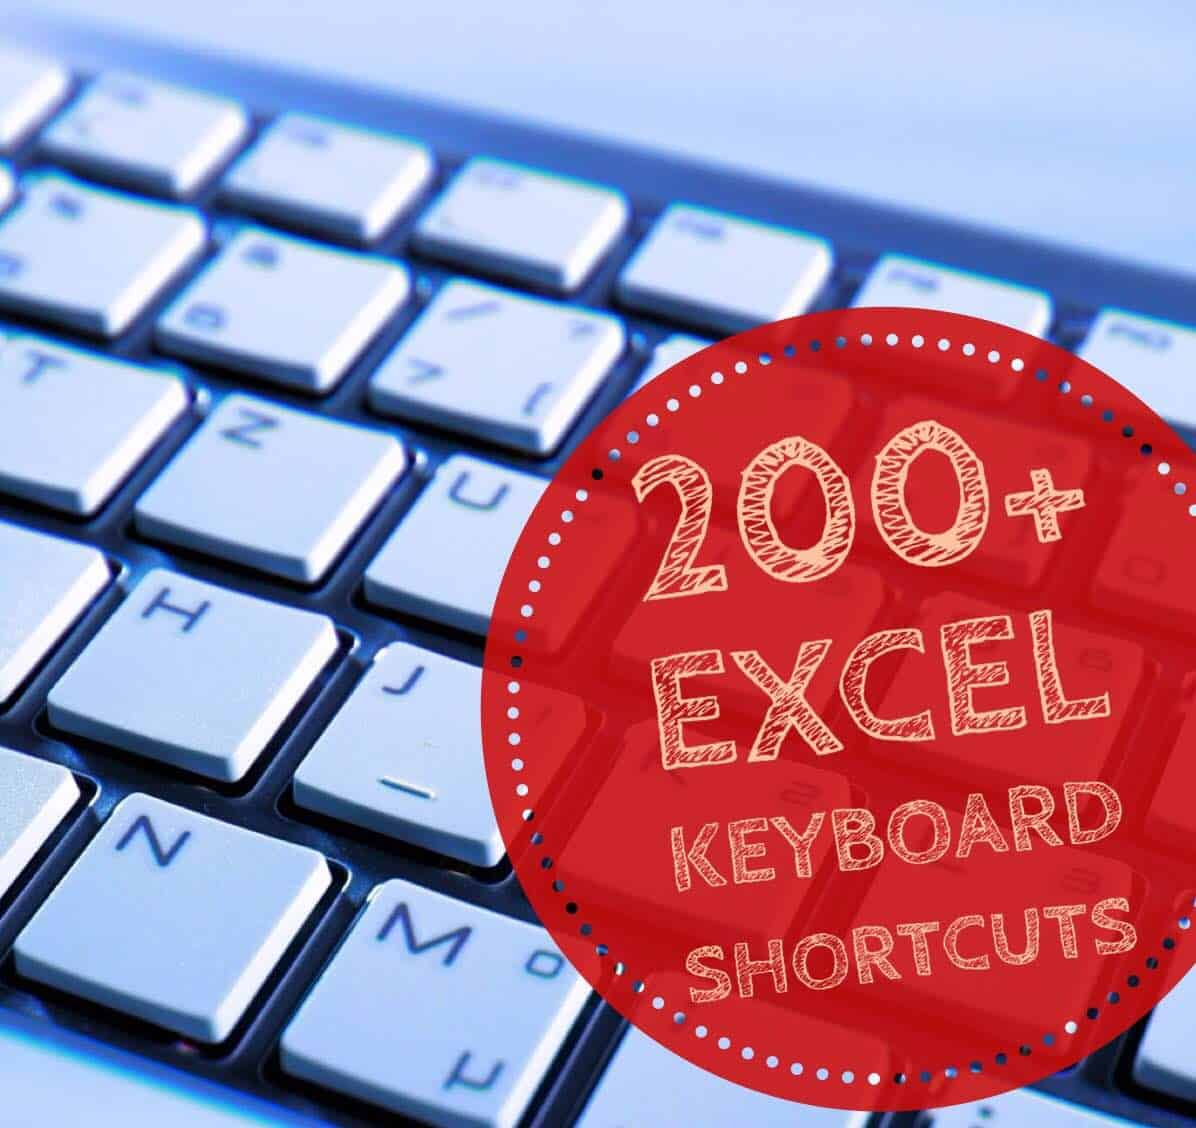 200 Excel Keyboard Shortcuts